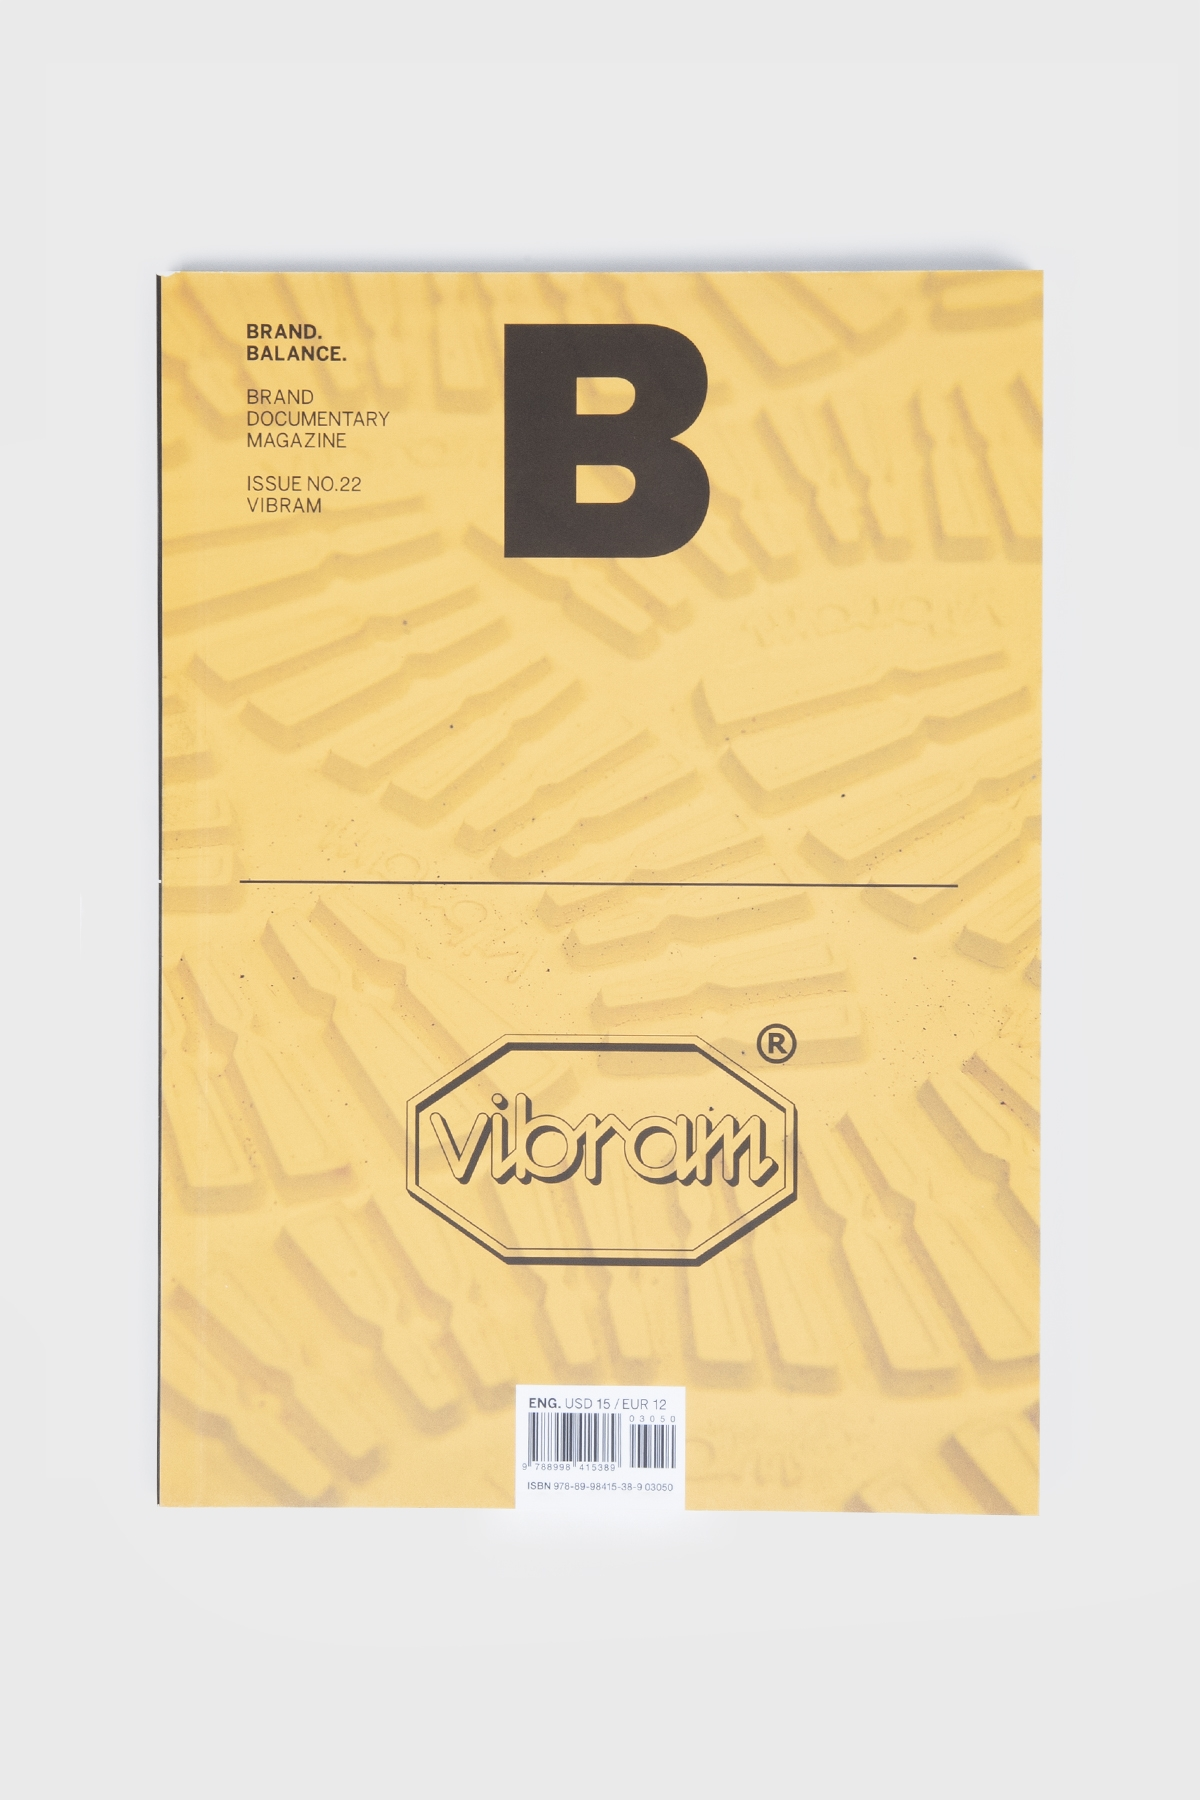 brand balance - issue 22 - Vibram